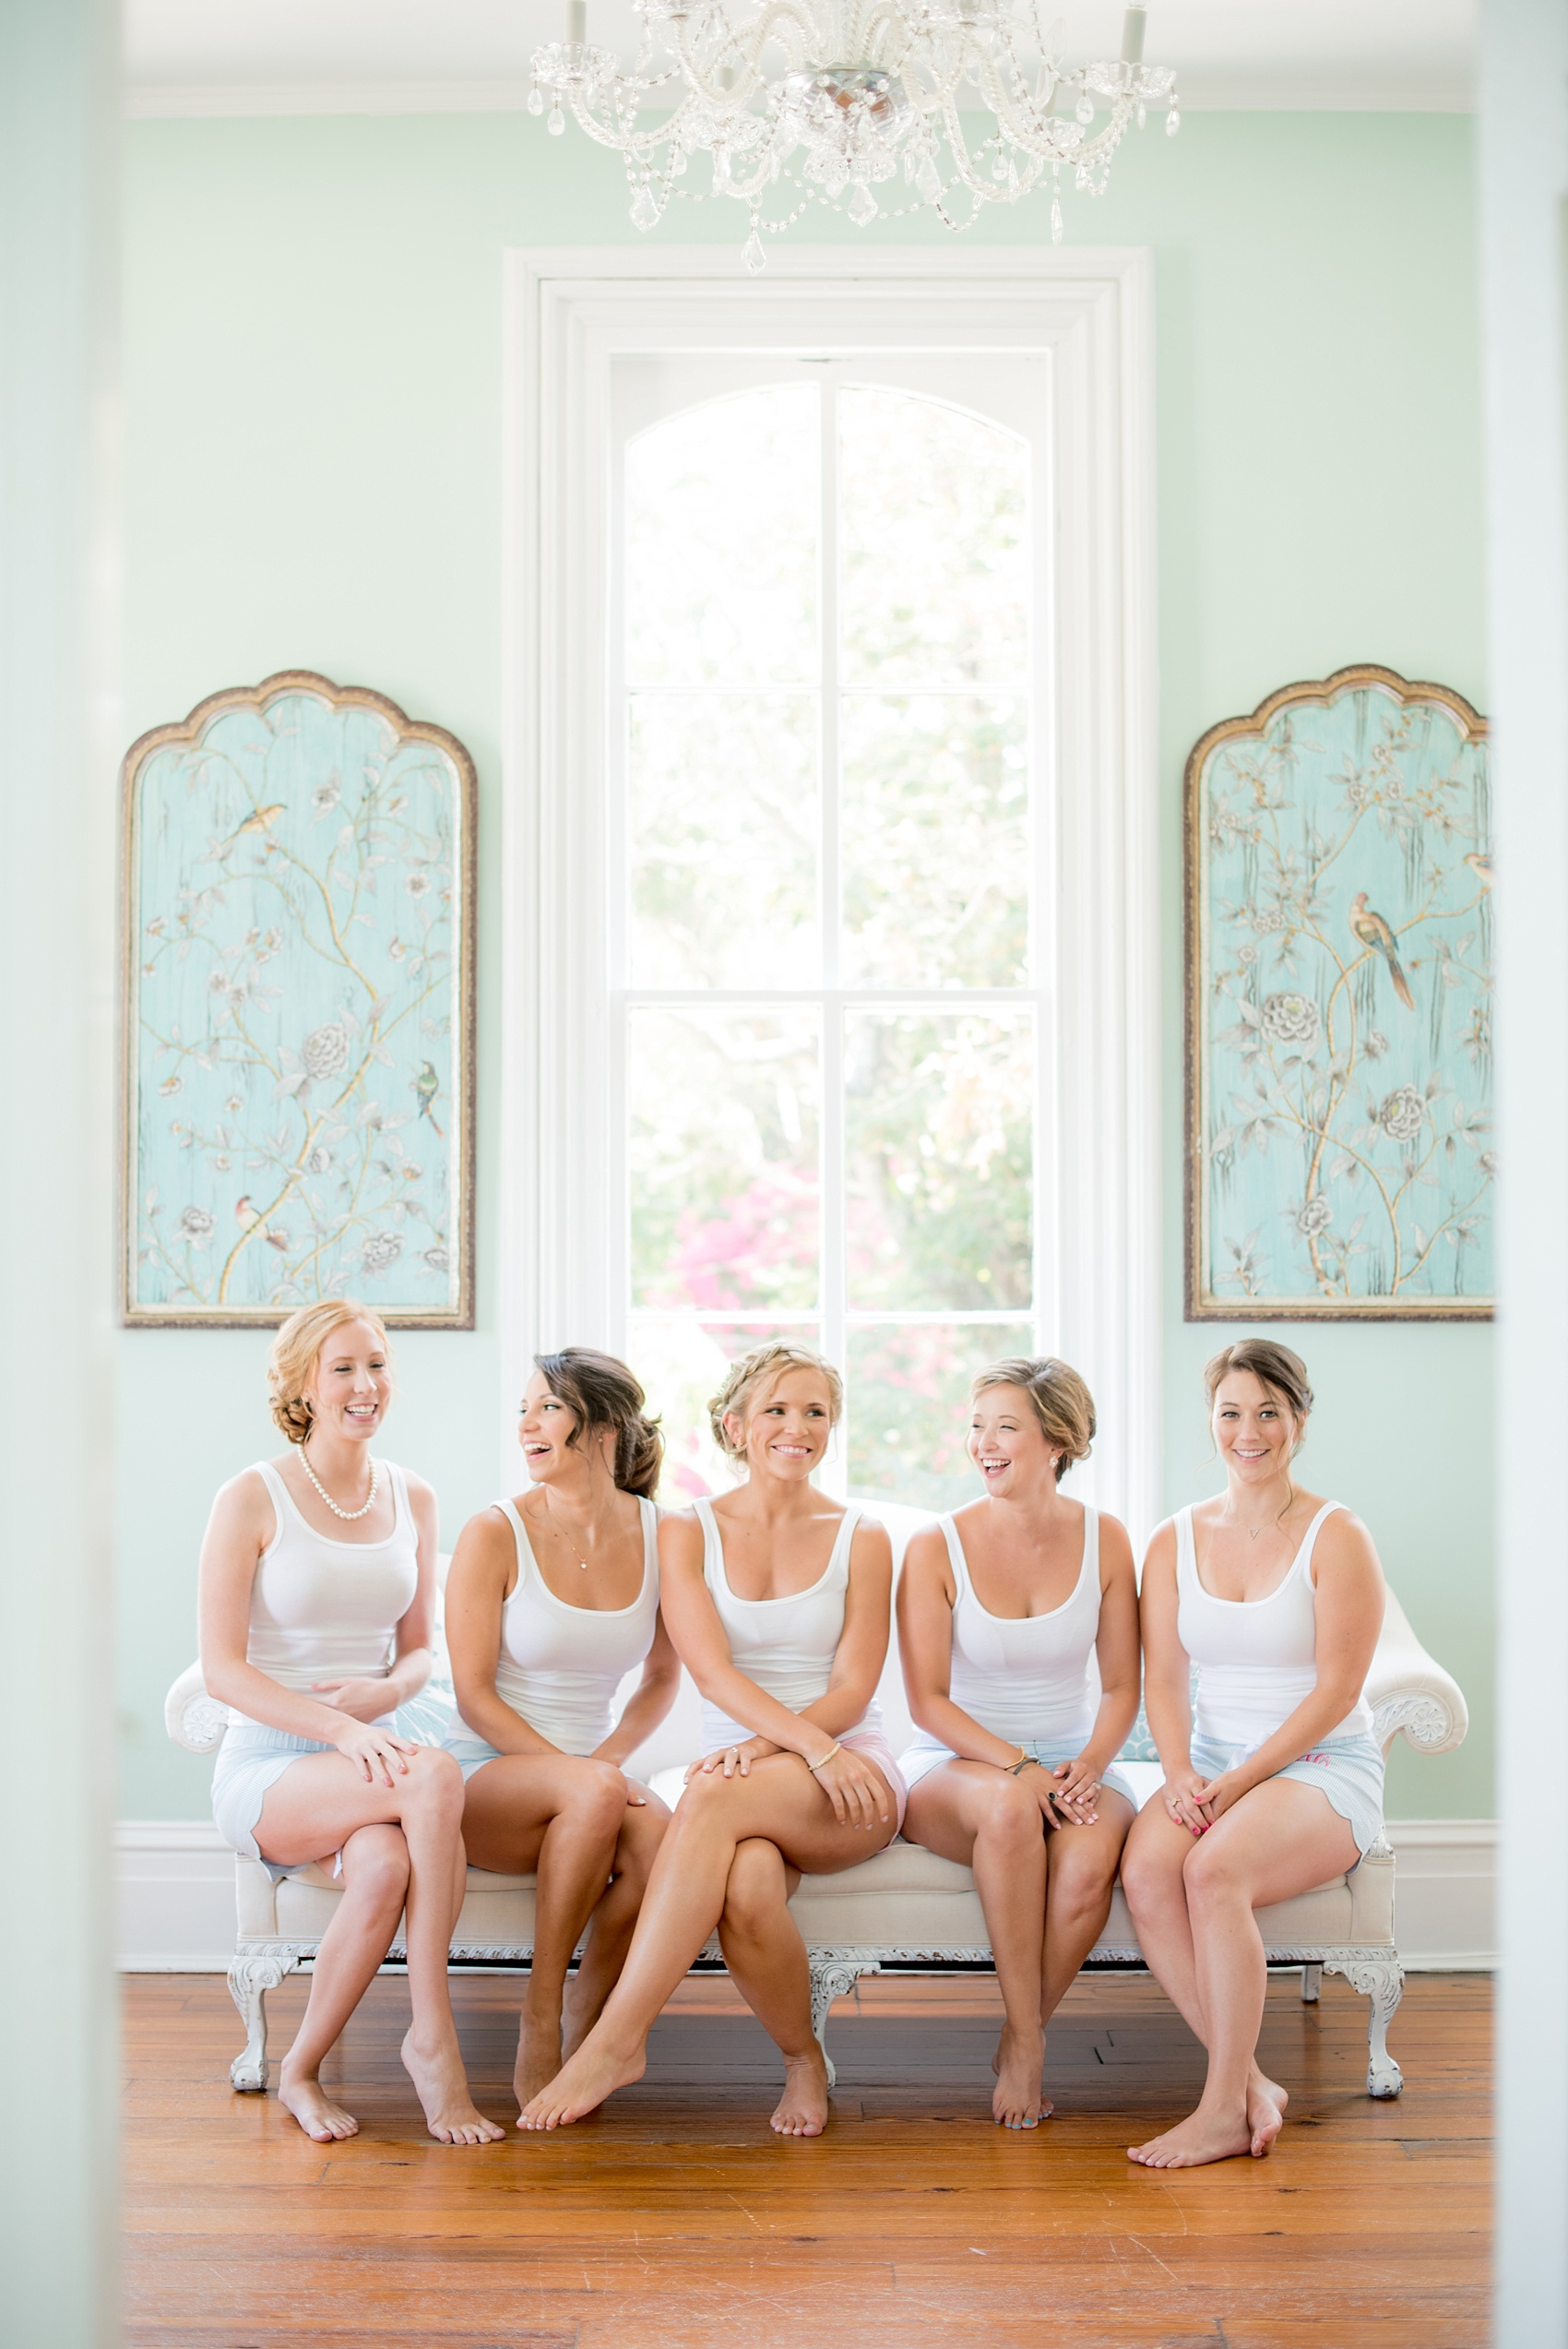 Mikkel Paige Photography wedding photos at The Merrimon-Wynne House in downtown Raleigh. The bridal party gets ready in matching outfits with monogrammed seersucker shorts from the bride.